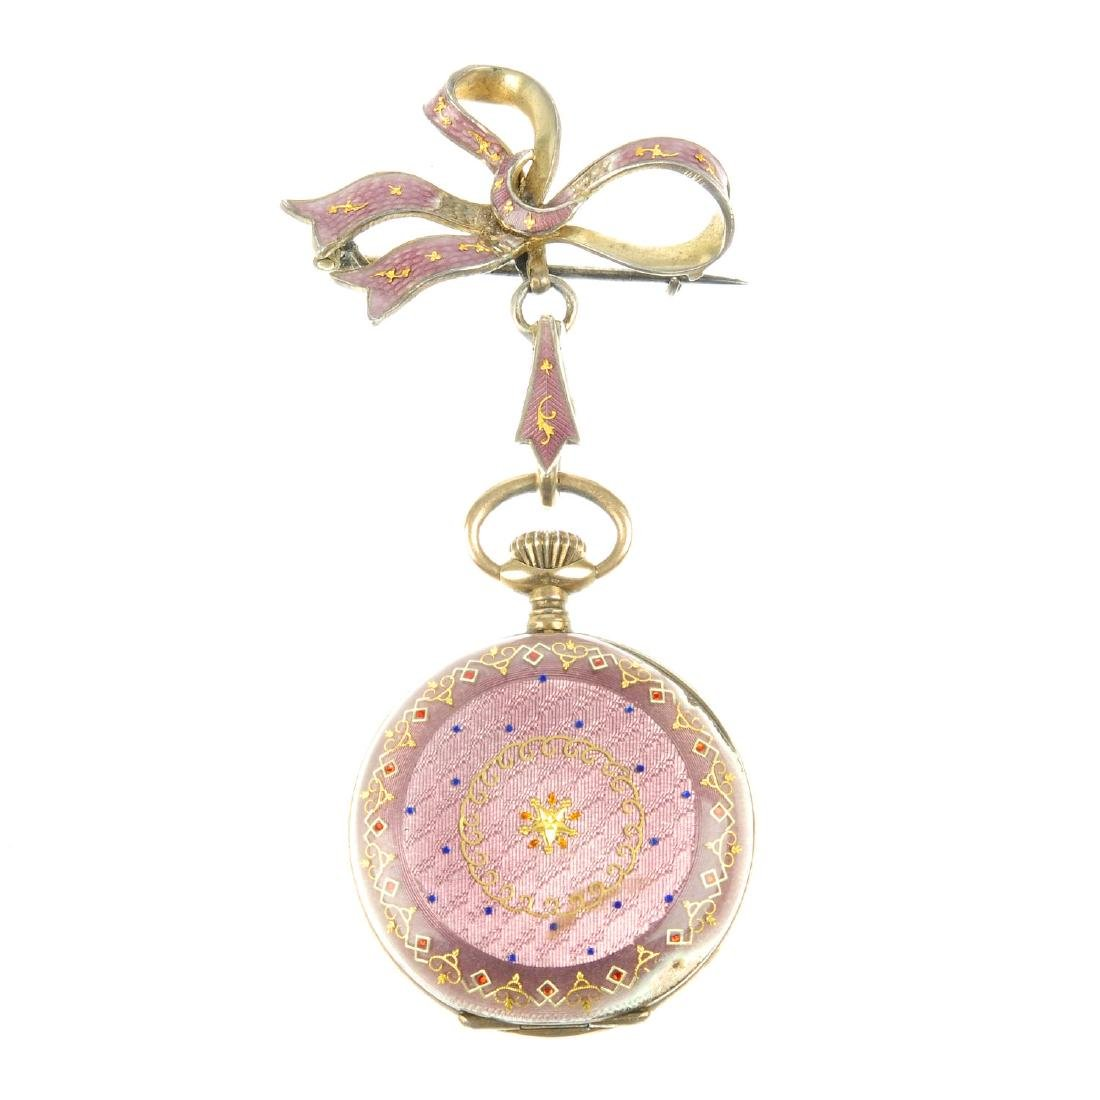 An Edwardian guilloche enamel fob watch. Designed as a